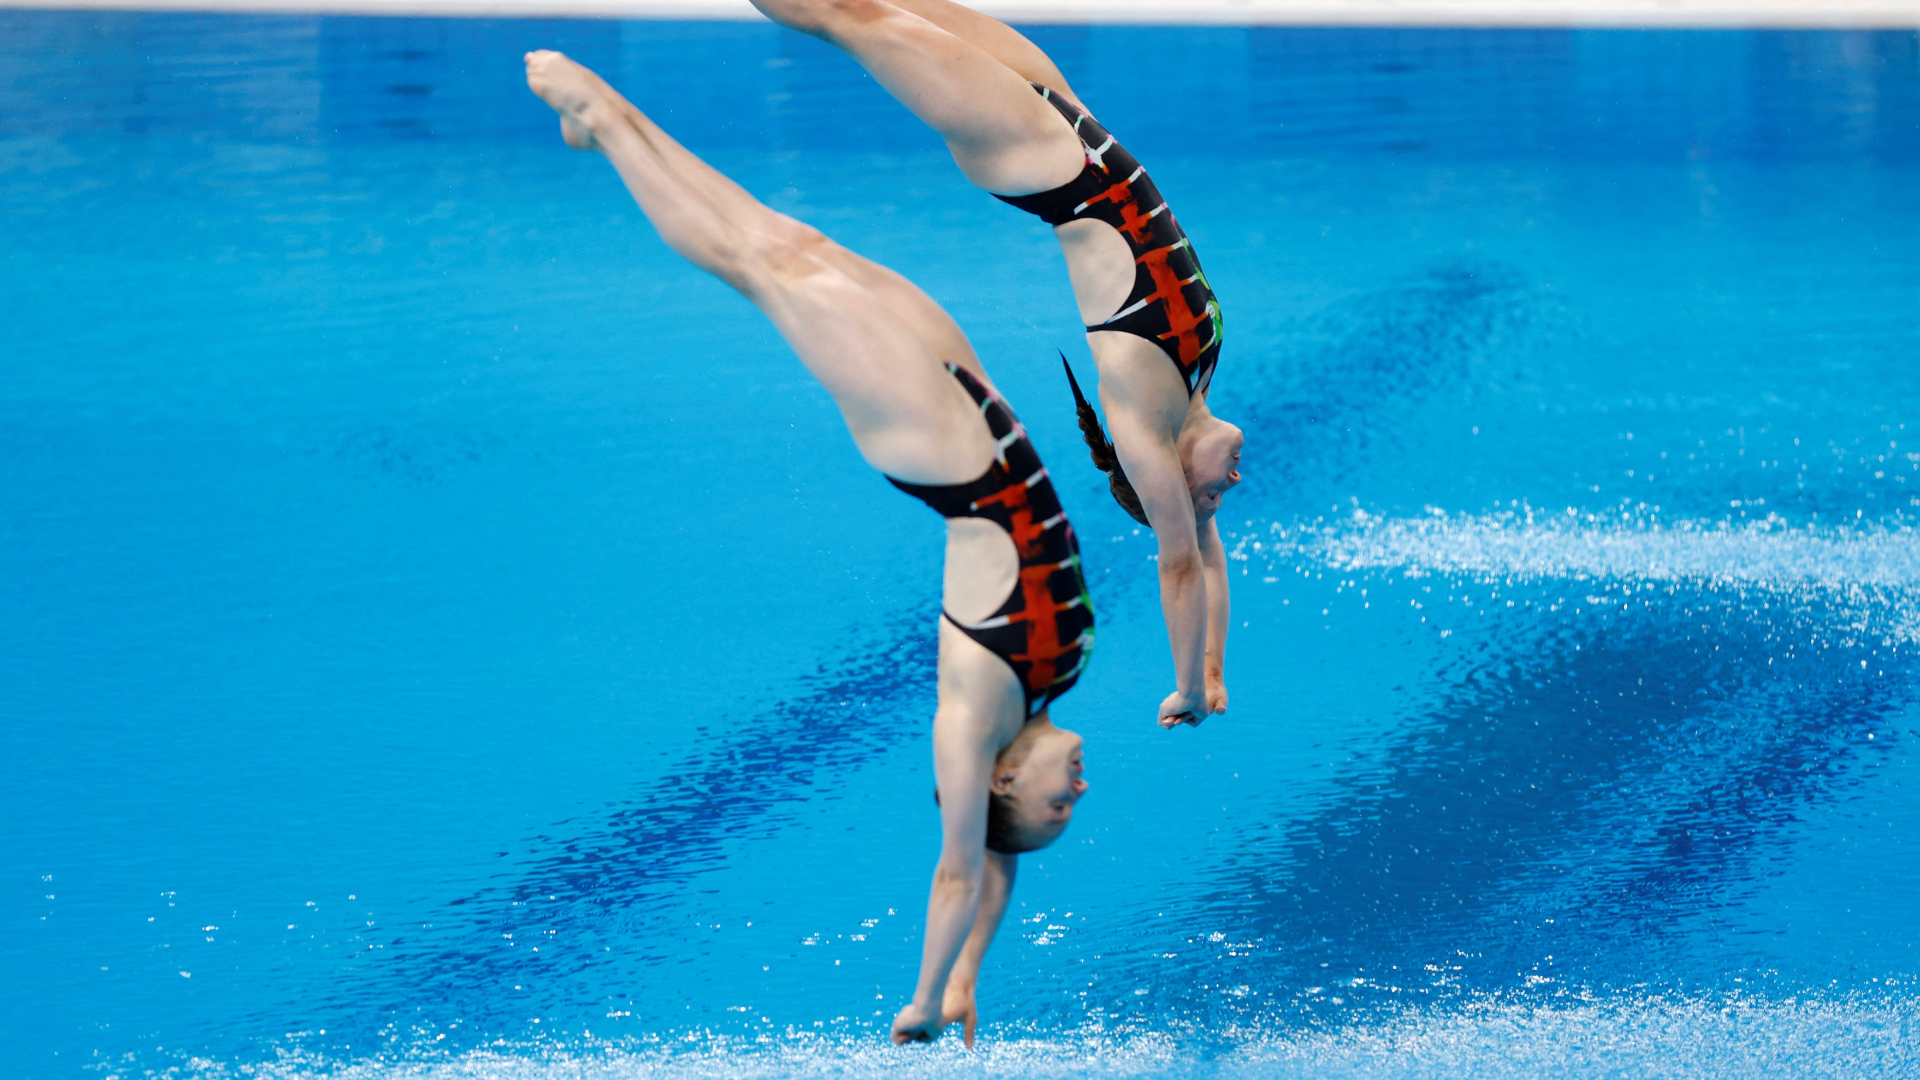 Why is water sprayed on Olympic pools? Explaining safety measure for diving events